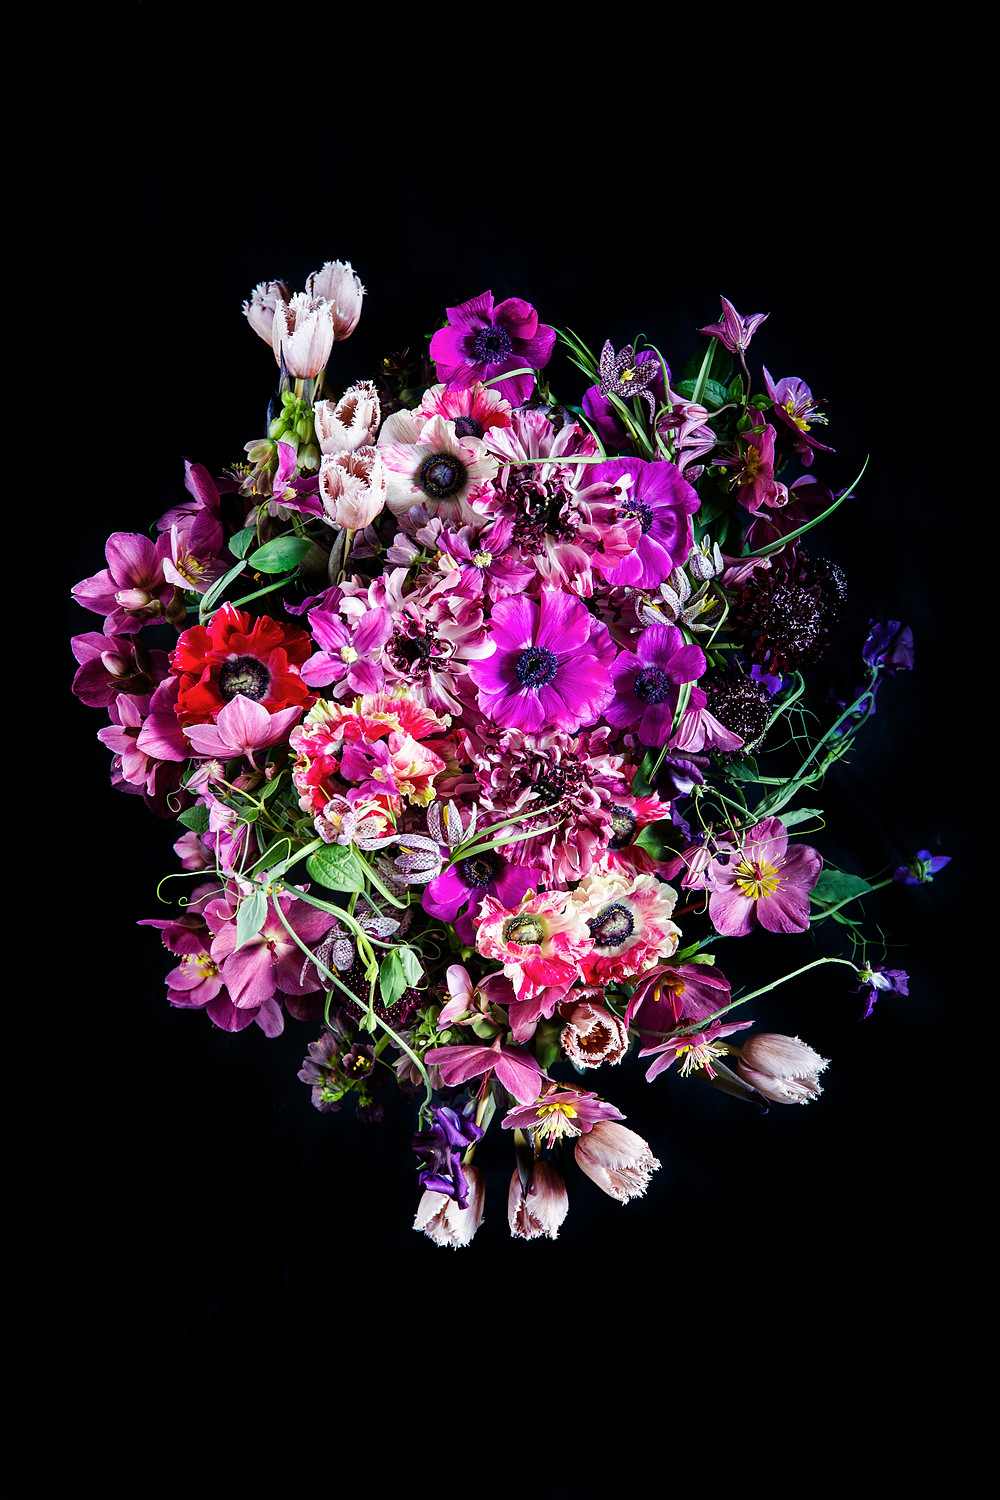 Flower photography using spring florals in jewel tones